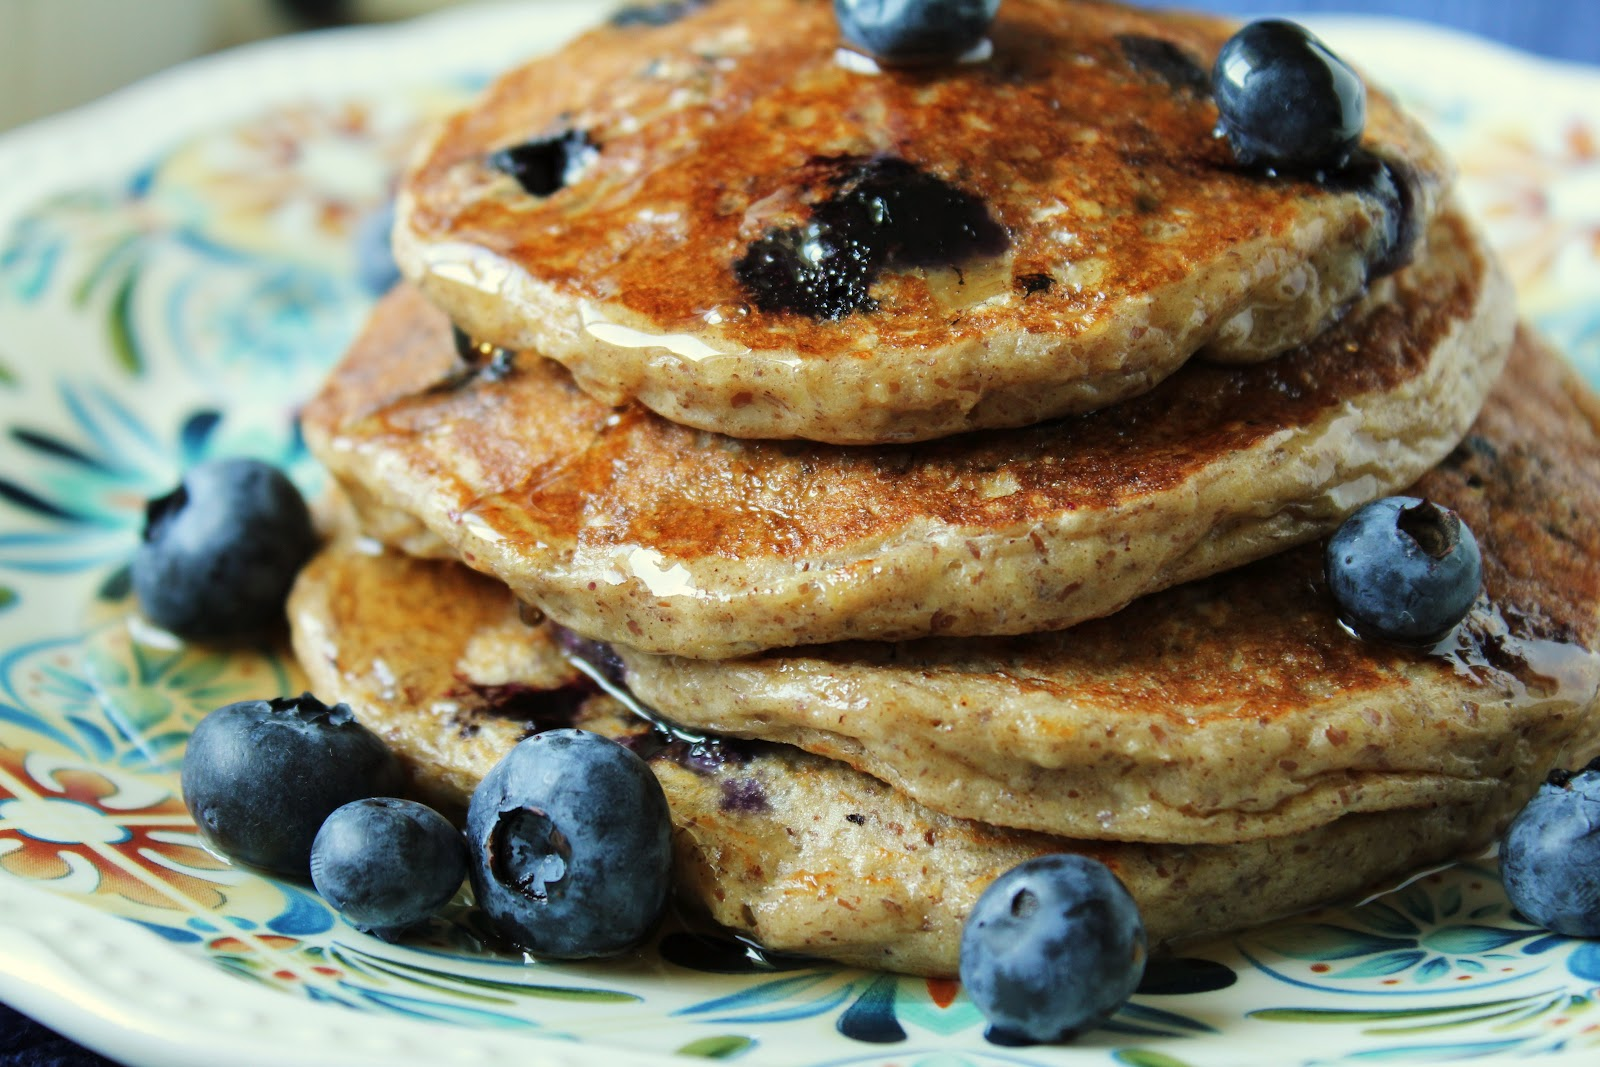 Elegant Oatmeal Cottage Cheese Pancakes With Blueberries